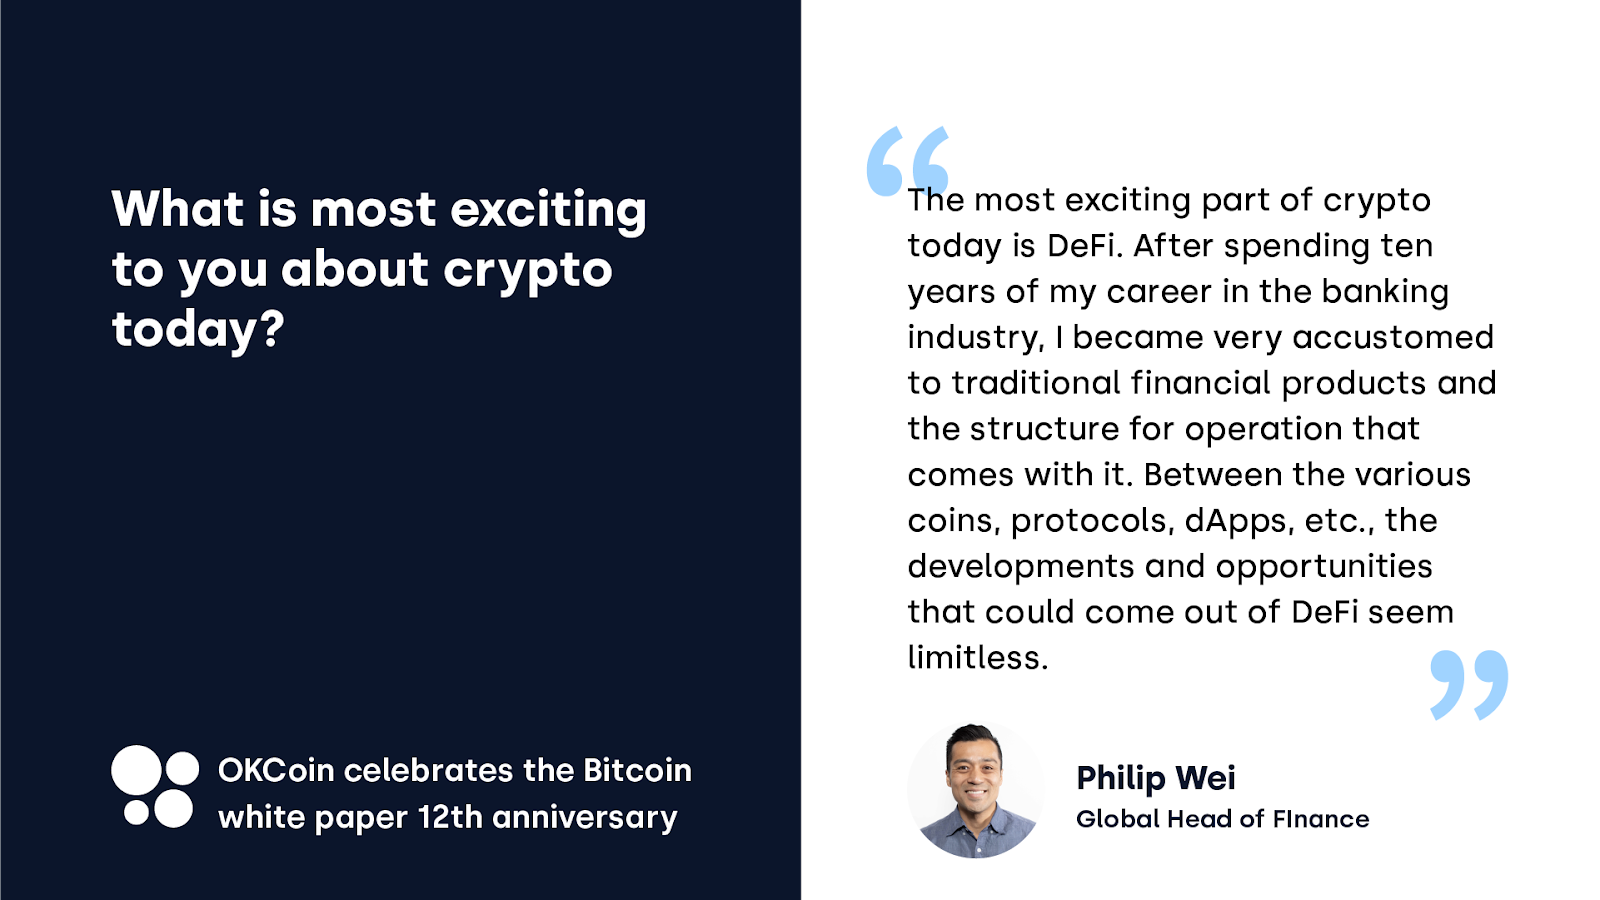 OKCoin celebrates the Bitcoin white paper anniversary — a quote from Philip Wei, Global Head of Finance at OKCoin